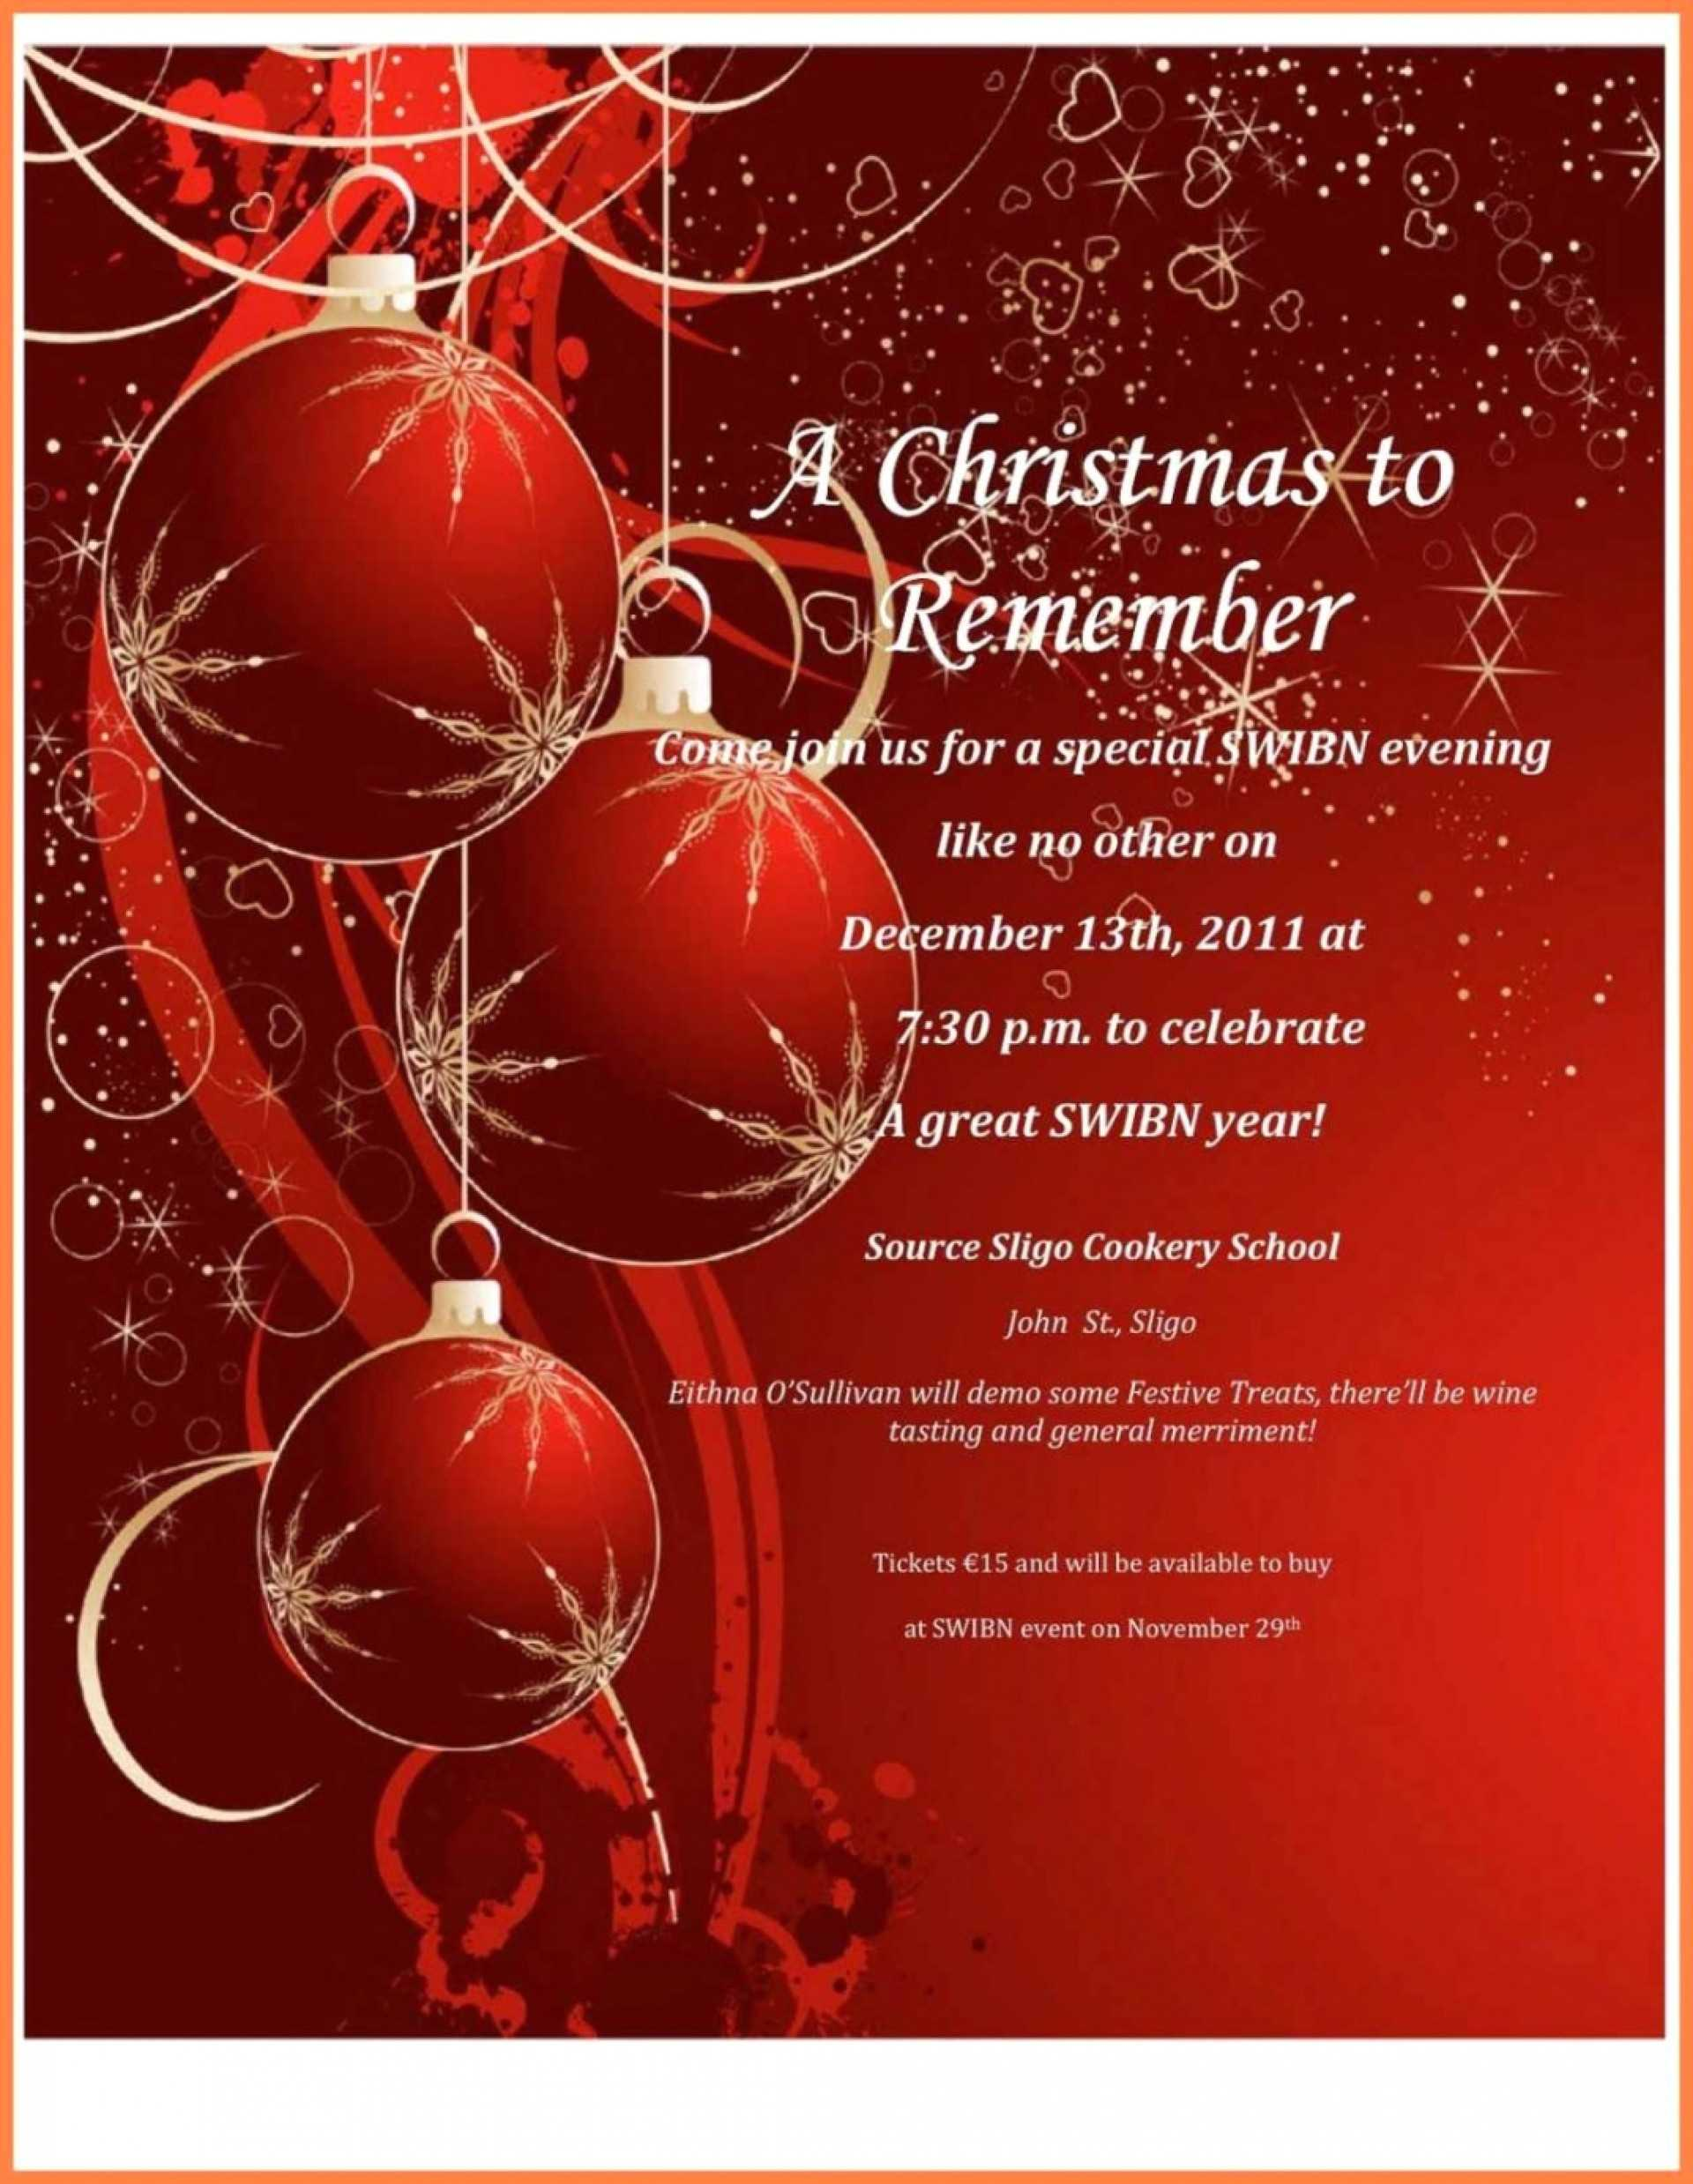 007 Free Microsoft Word Christmas Flyer Templates Holiday Intended For Christmas Brochure Templates Free